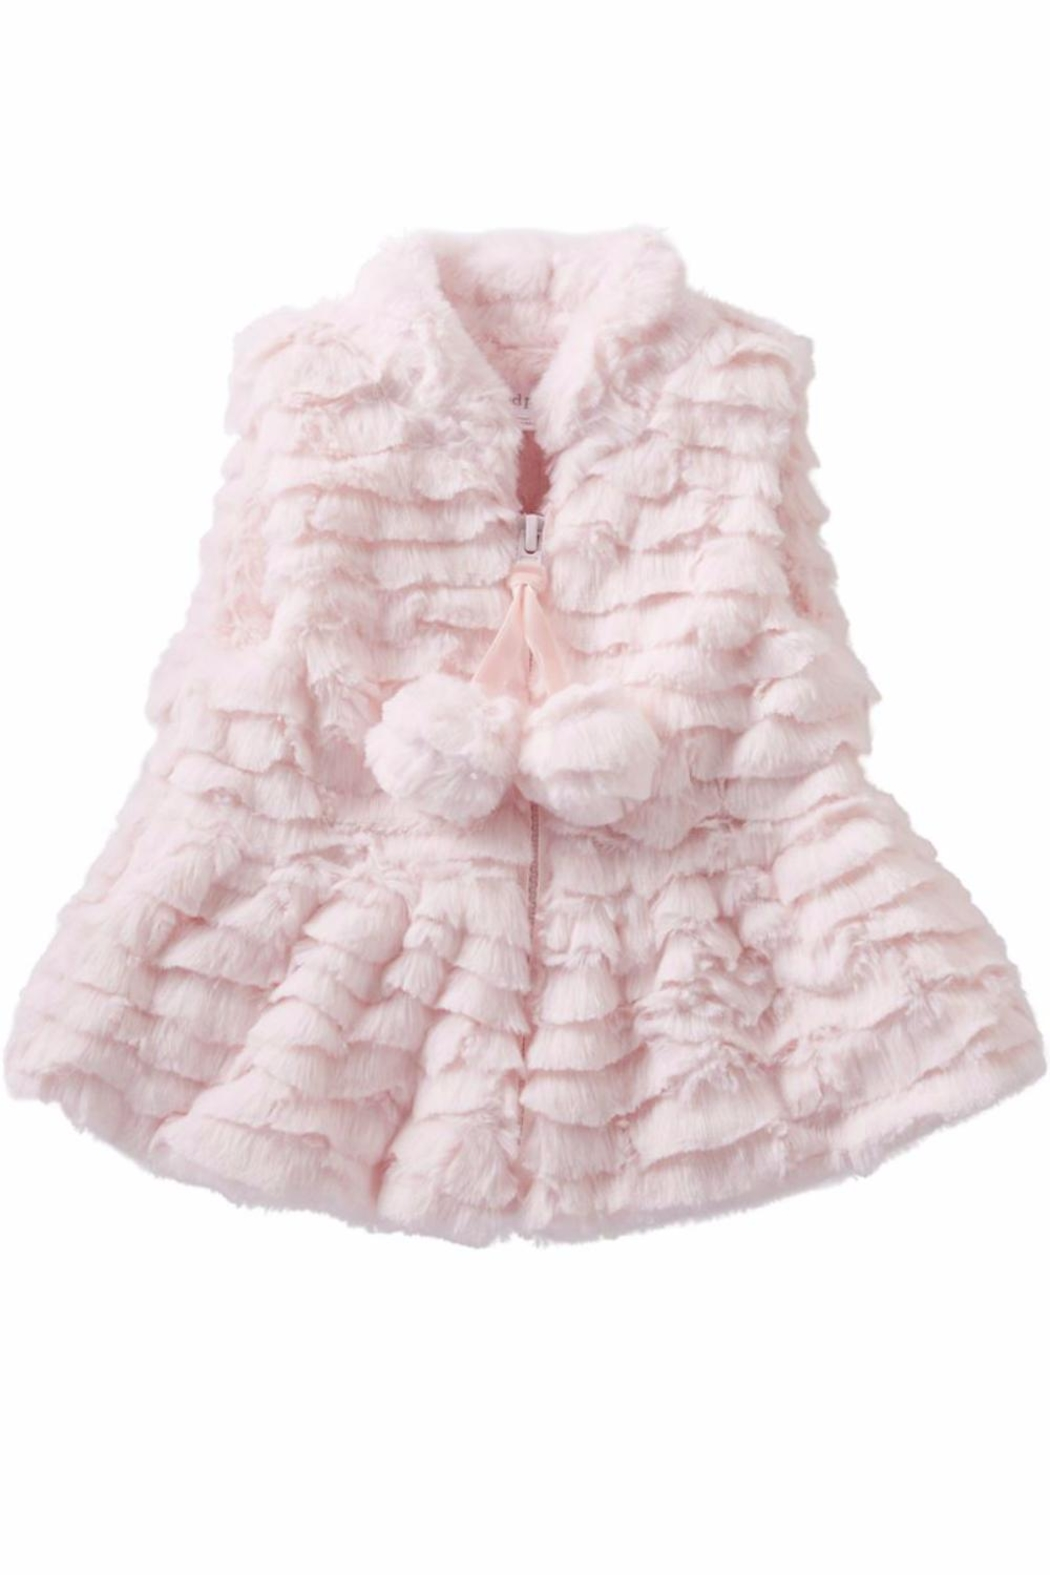 Mud Pie Pink Fur Vest - Main Image